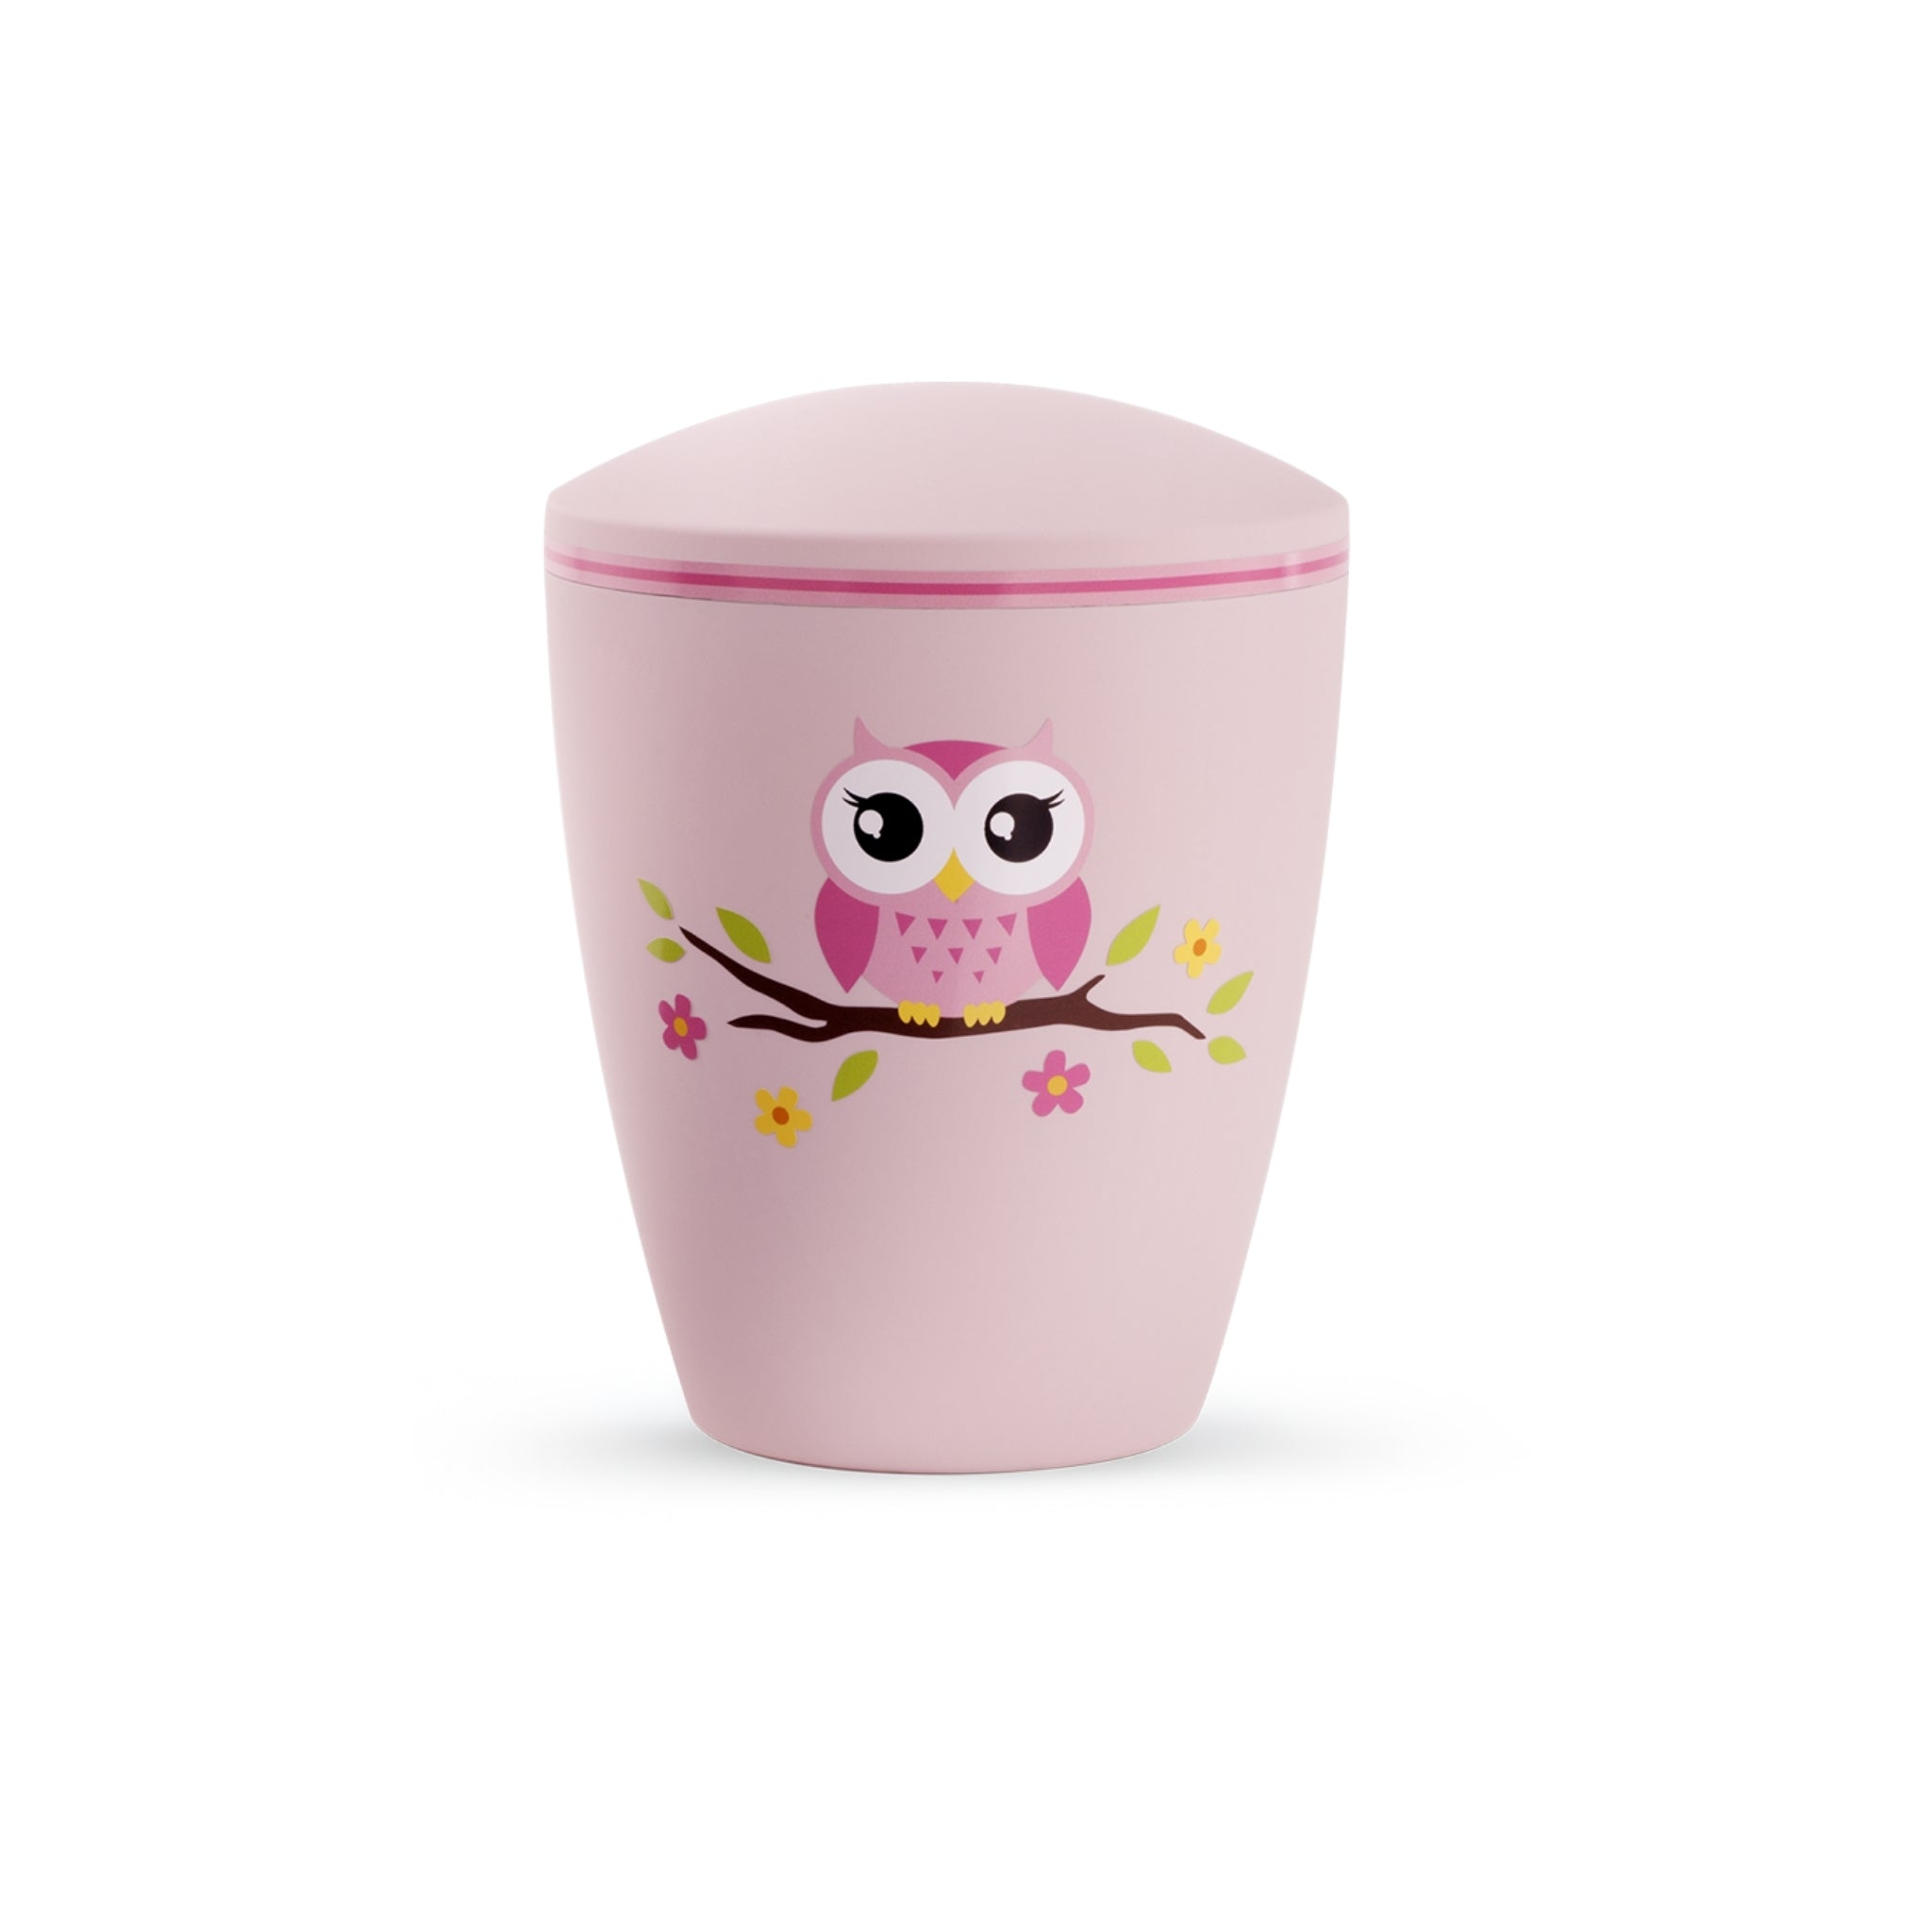 Eco Friendly Childrens Cremation Ashes Urn Pink Owl